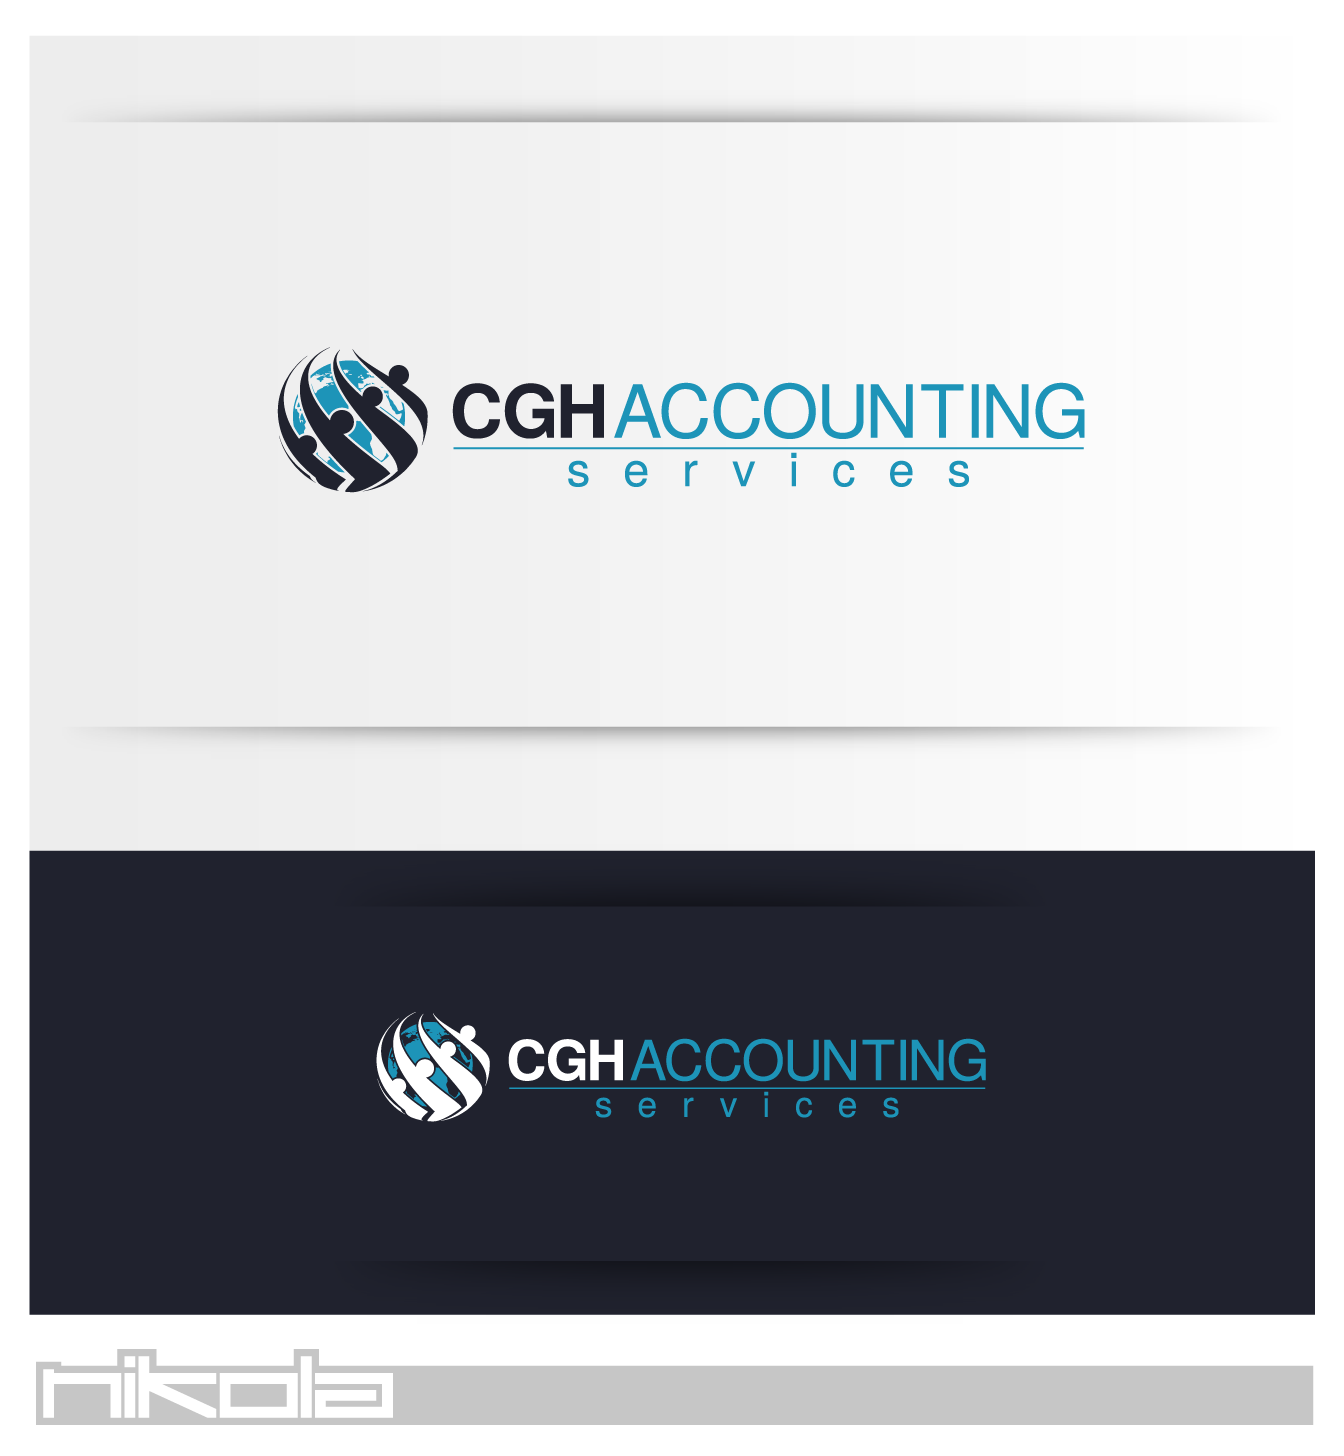 New logo wanted for cgh accounting services